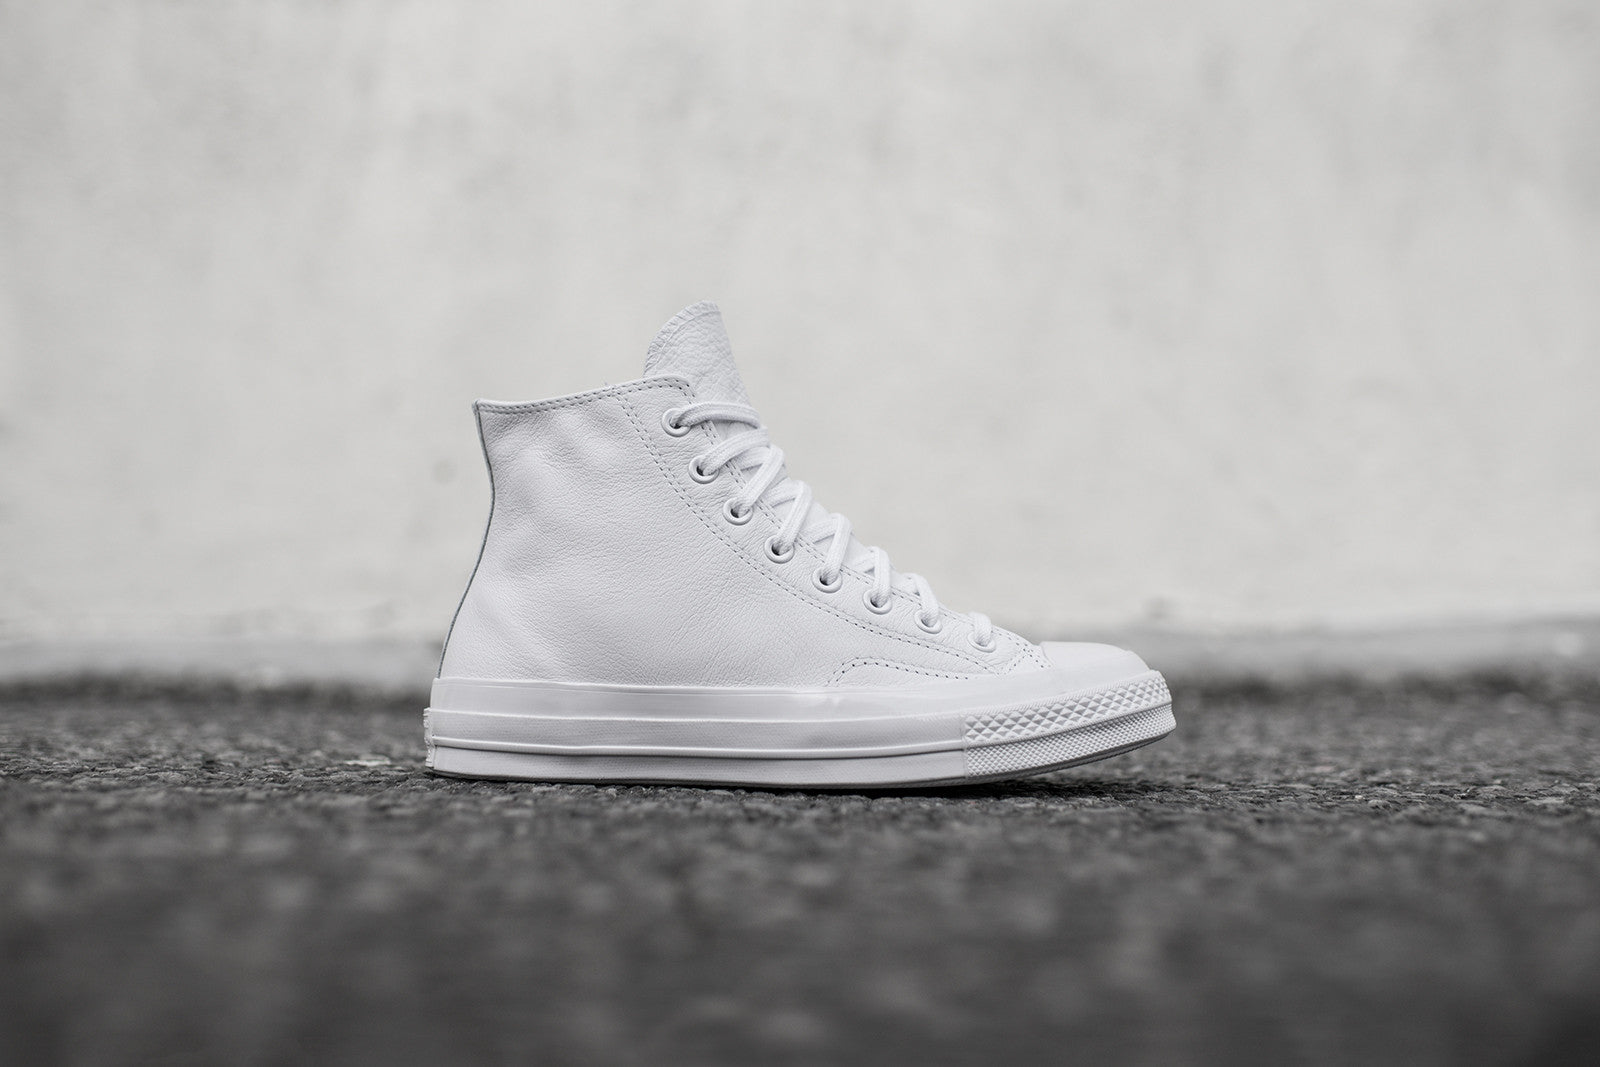 8d4349e5daeb Converse Chuck Taylor All Star  70 Mono High   Low Pack. April 11